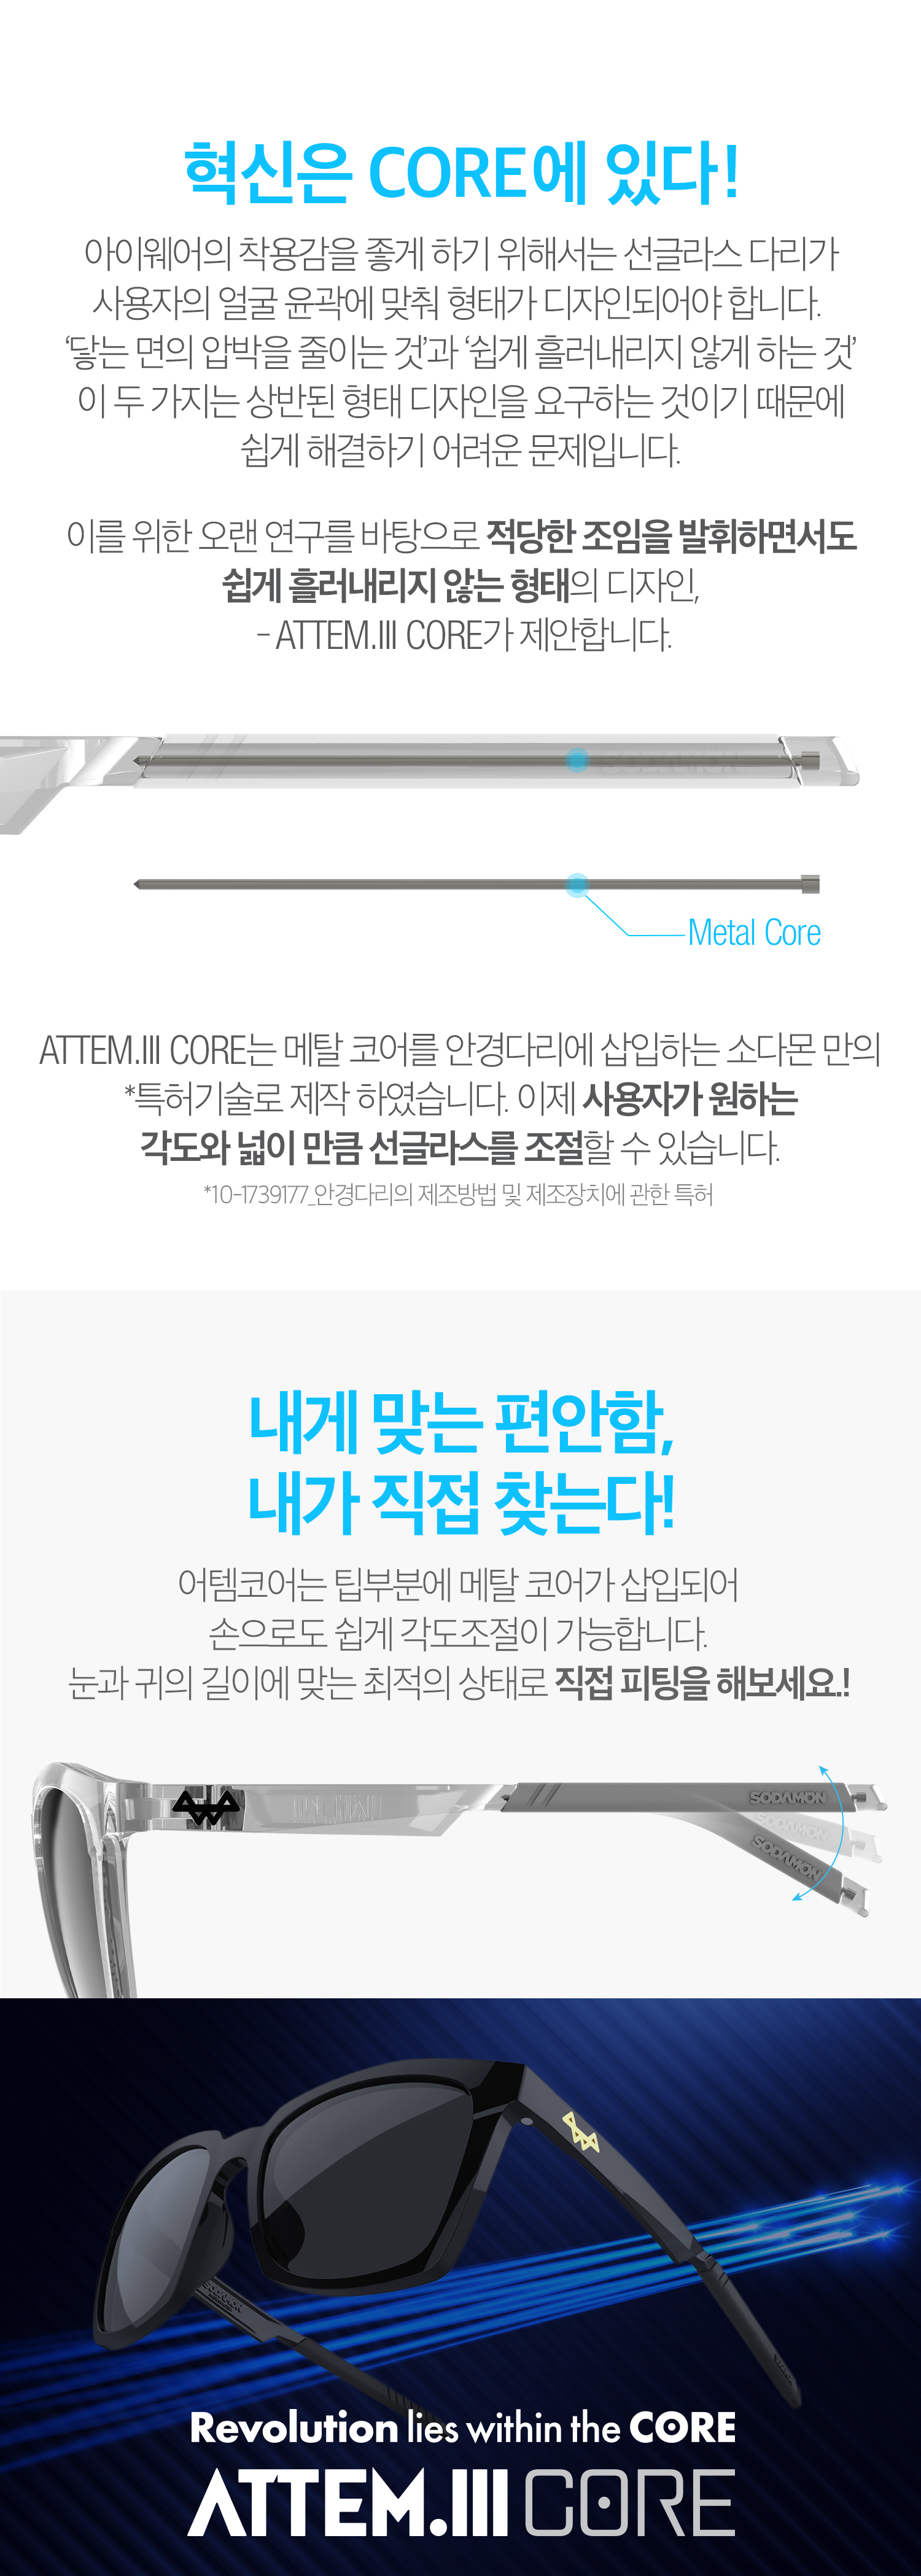 attem.Ⅲ core 설명